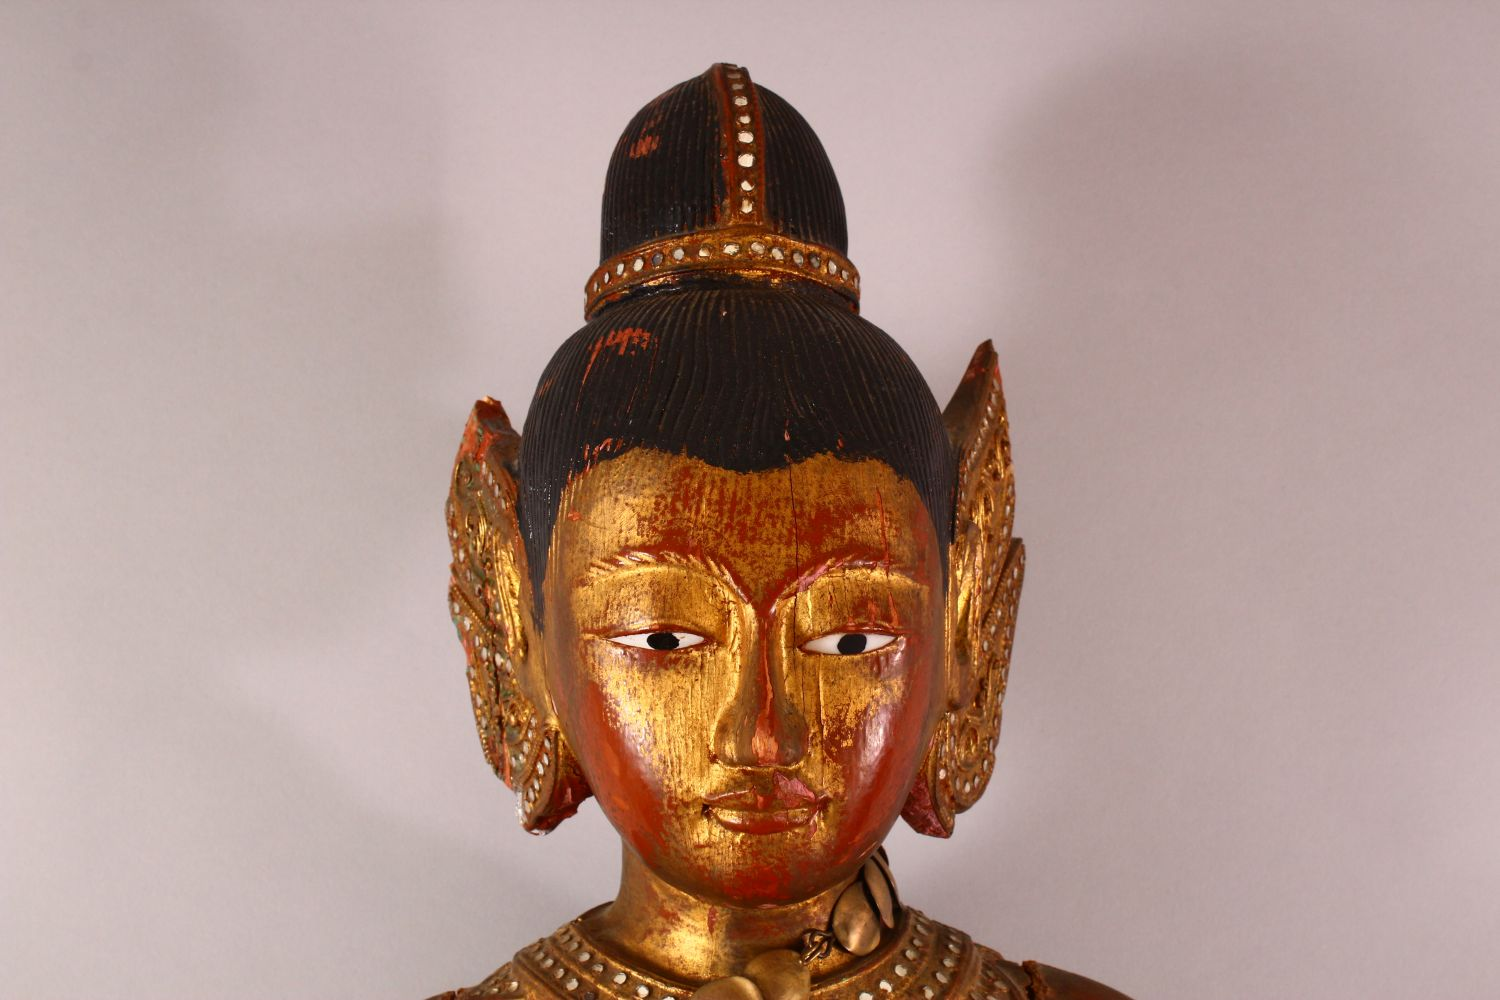 A LARGE THAI GILT AND RED LACQUER CARVED WOOD FIGURE, standing on a lotus base, 104cm high. - Image 2 of 8